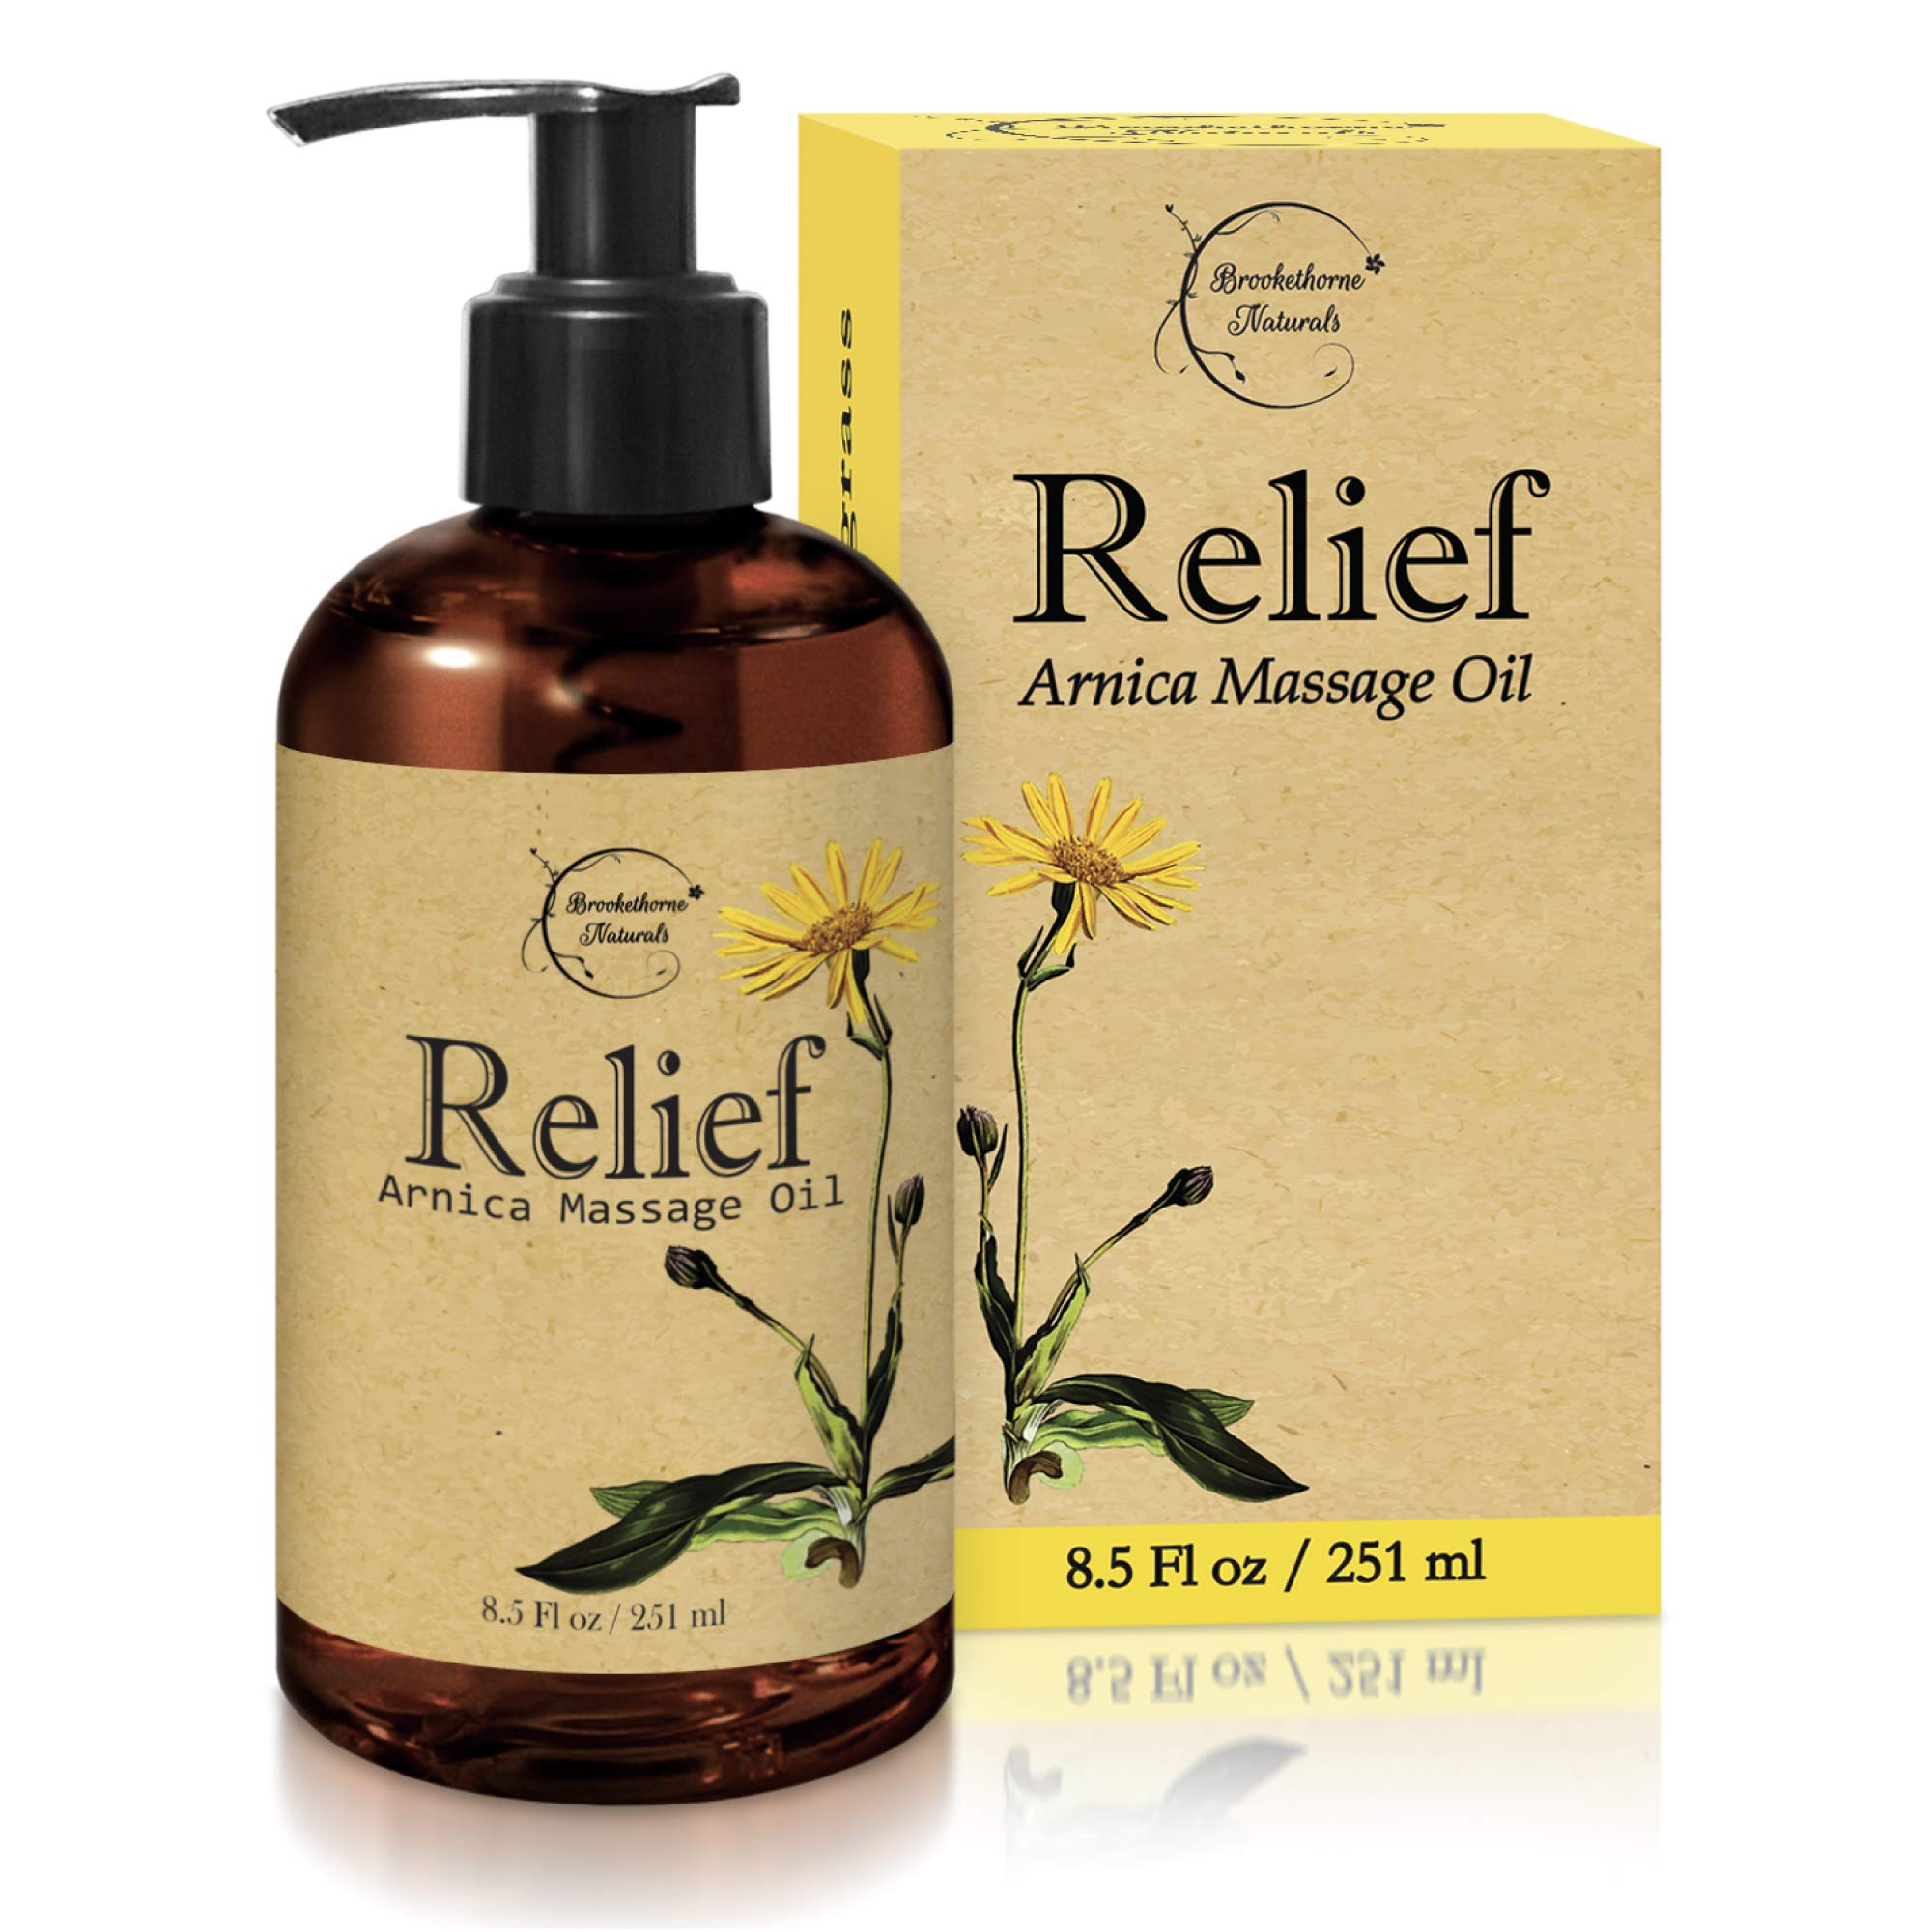 Relief Arnica Massage Oil - Great for Sports & Athletic Therapeutic Massage - All Natural - Arnica Montana for Sore Muscle Relief. Contains Sweet Almond, Jojoba, Grapeseed & Essential Oils 8.5oz by Brookethorne Naturals